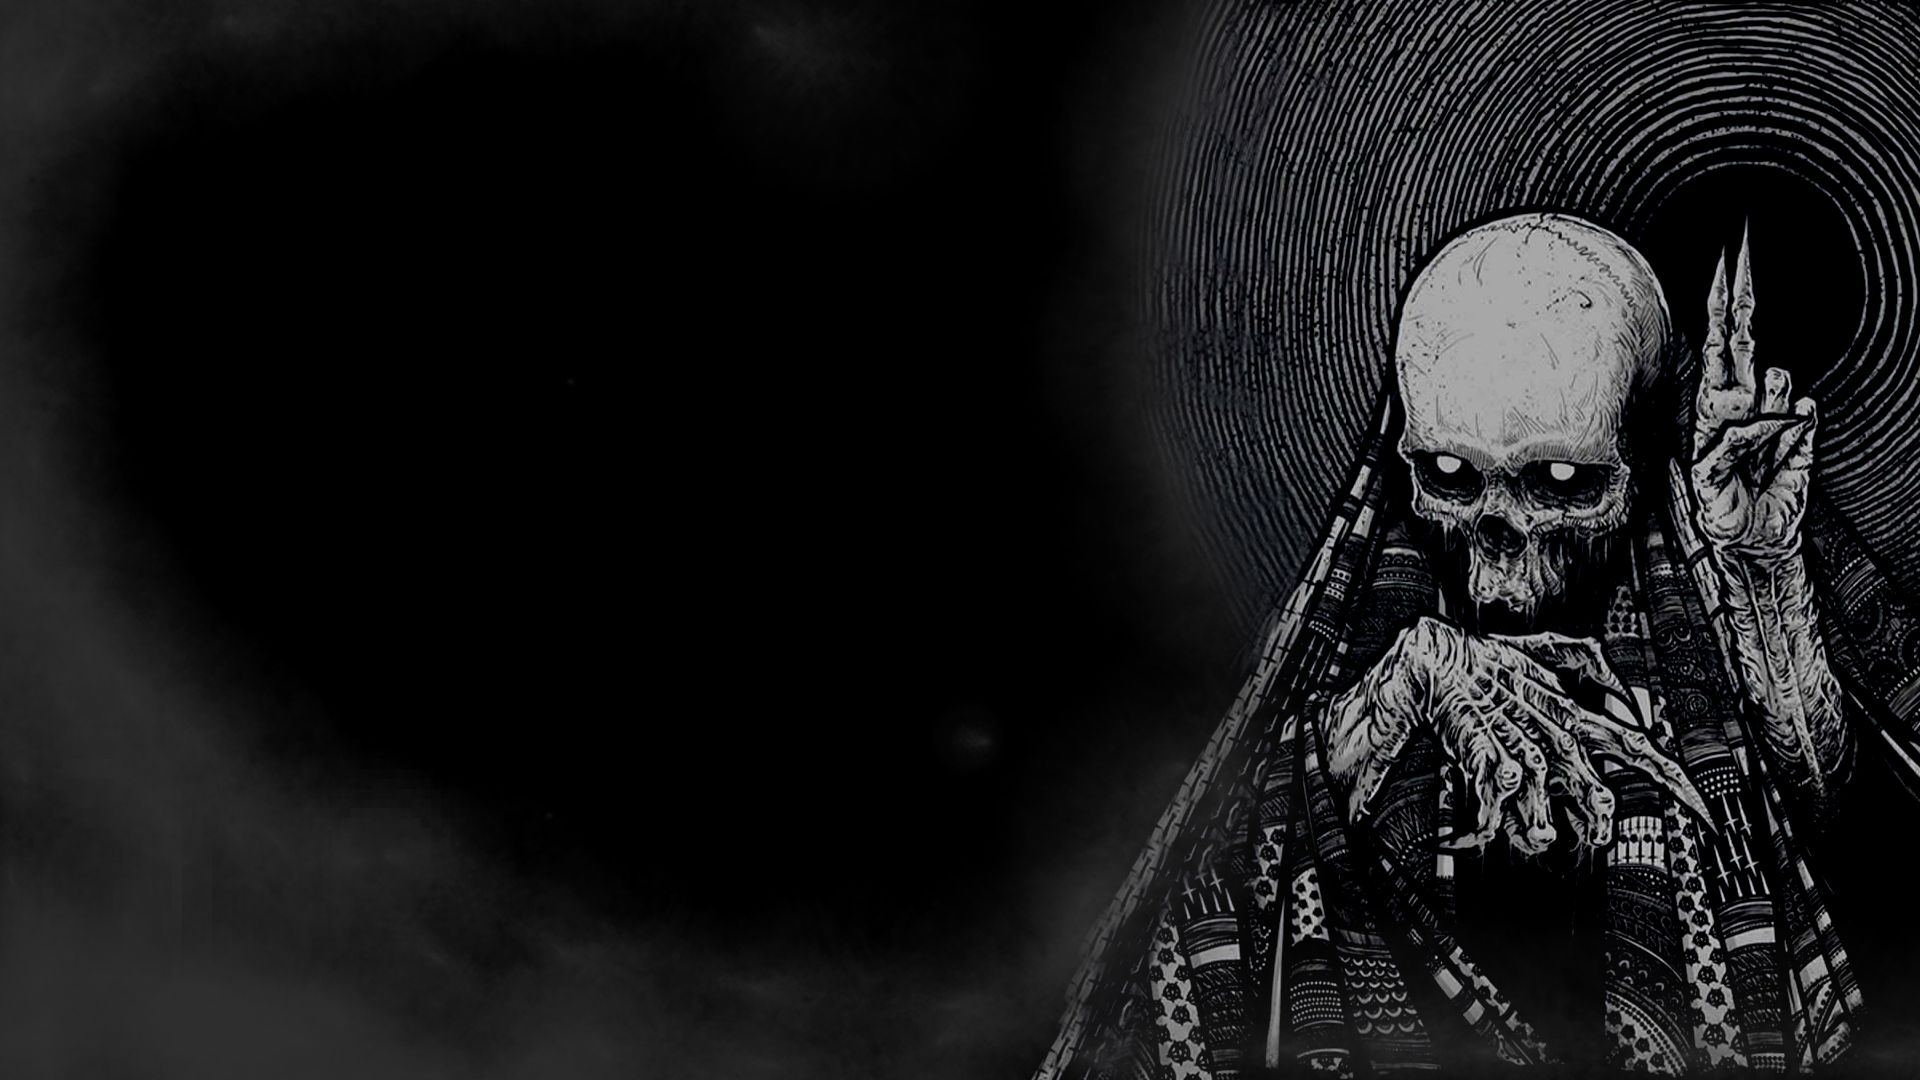 Dark horror skeleton skull occult evil wallpaper 1920x1080 28014 1920x1080